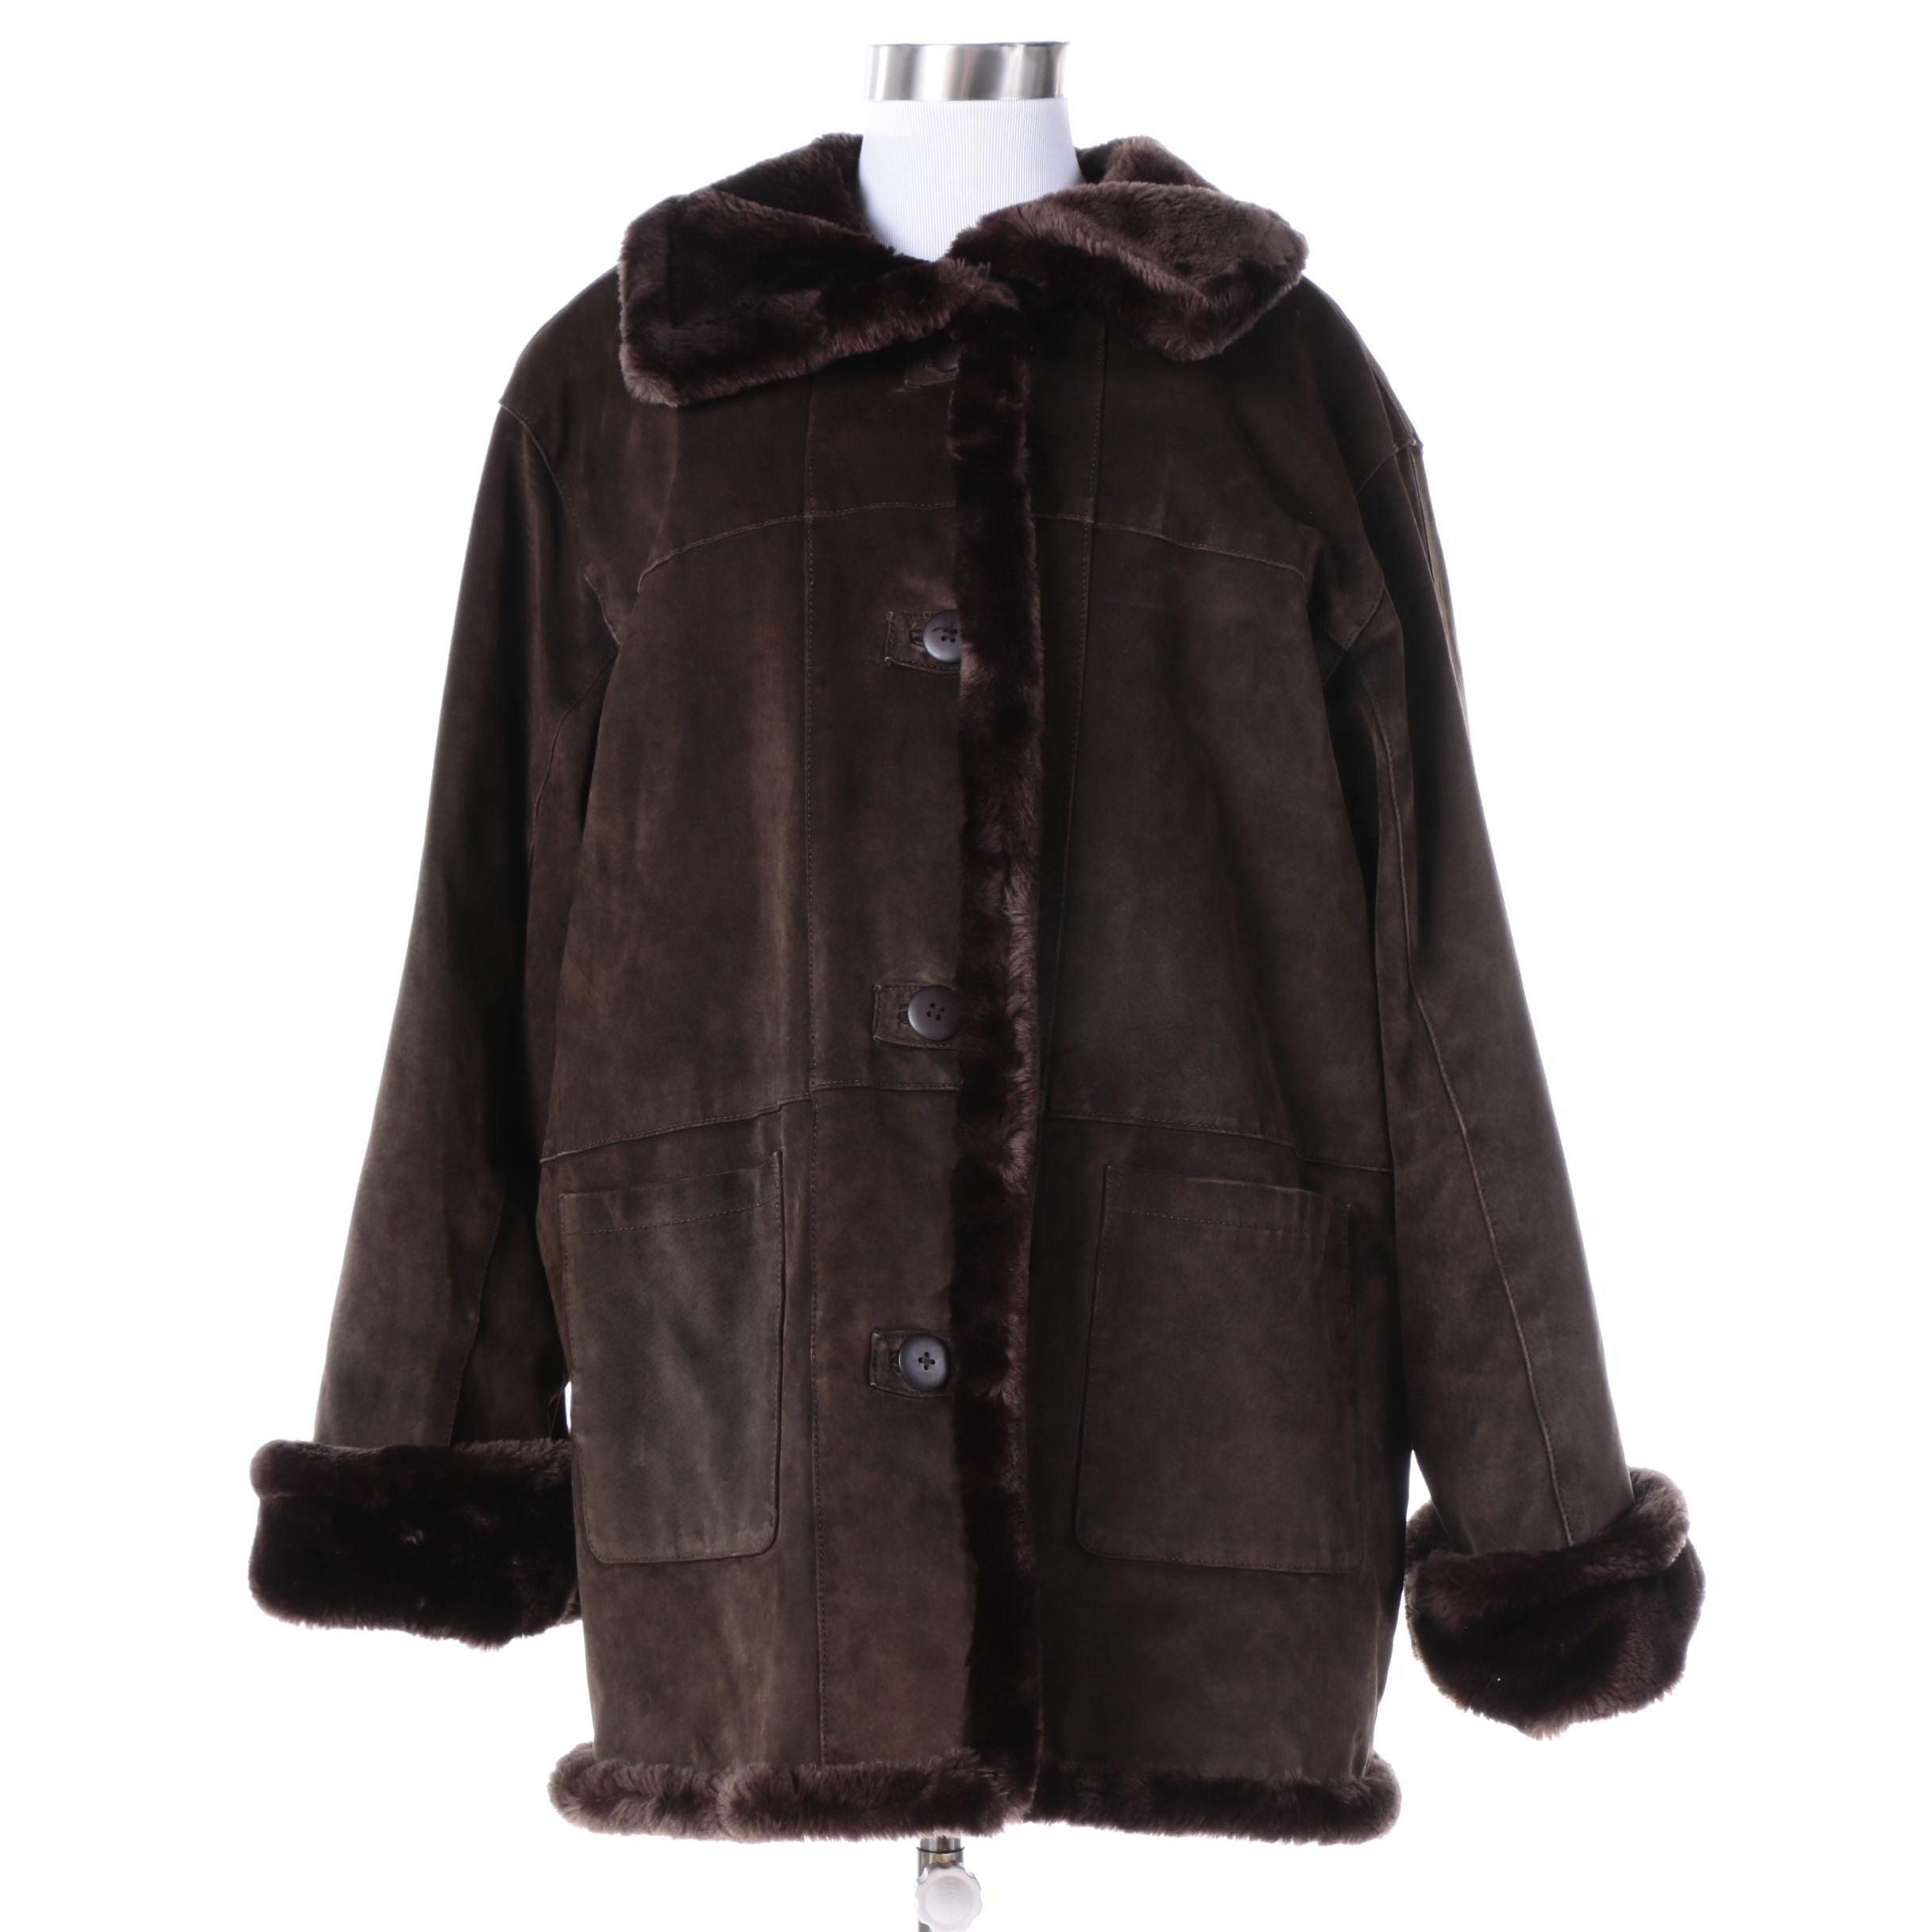 Women's Savannah Brown Leather and Faux Fur Coat